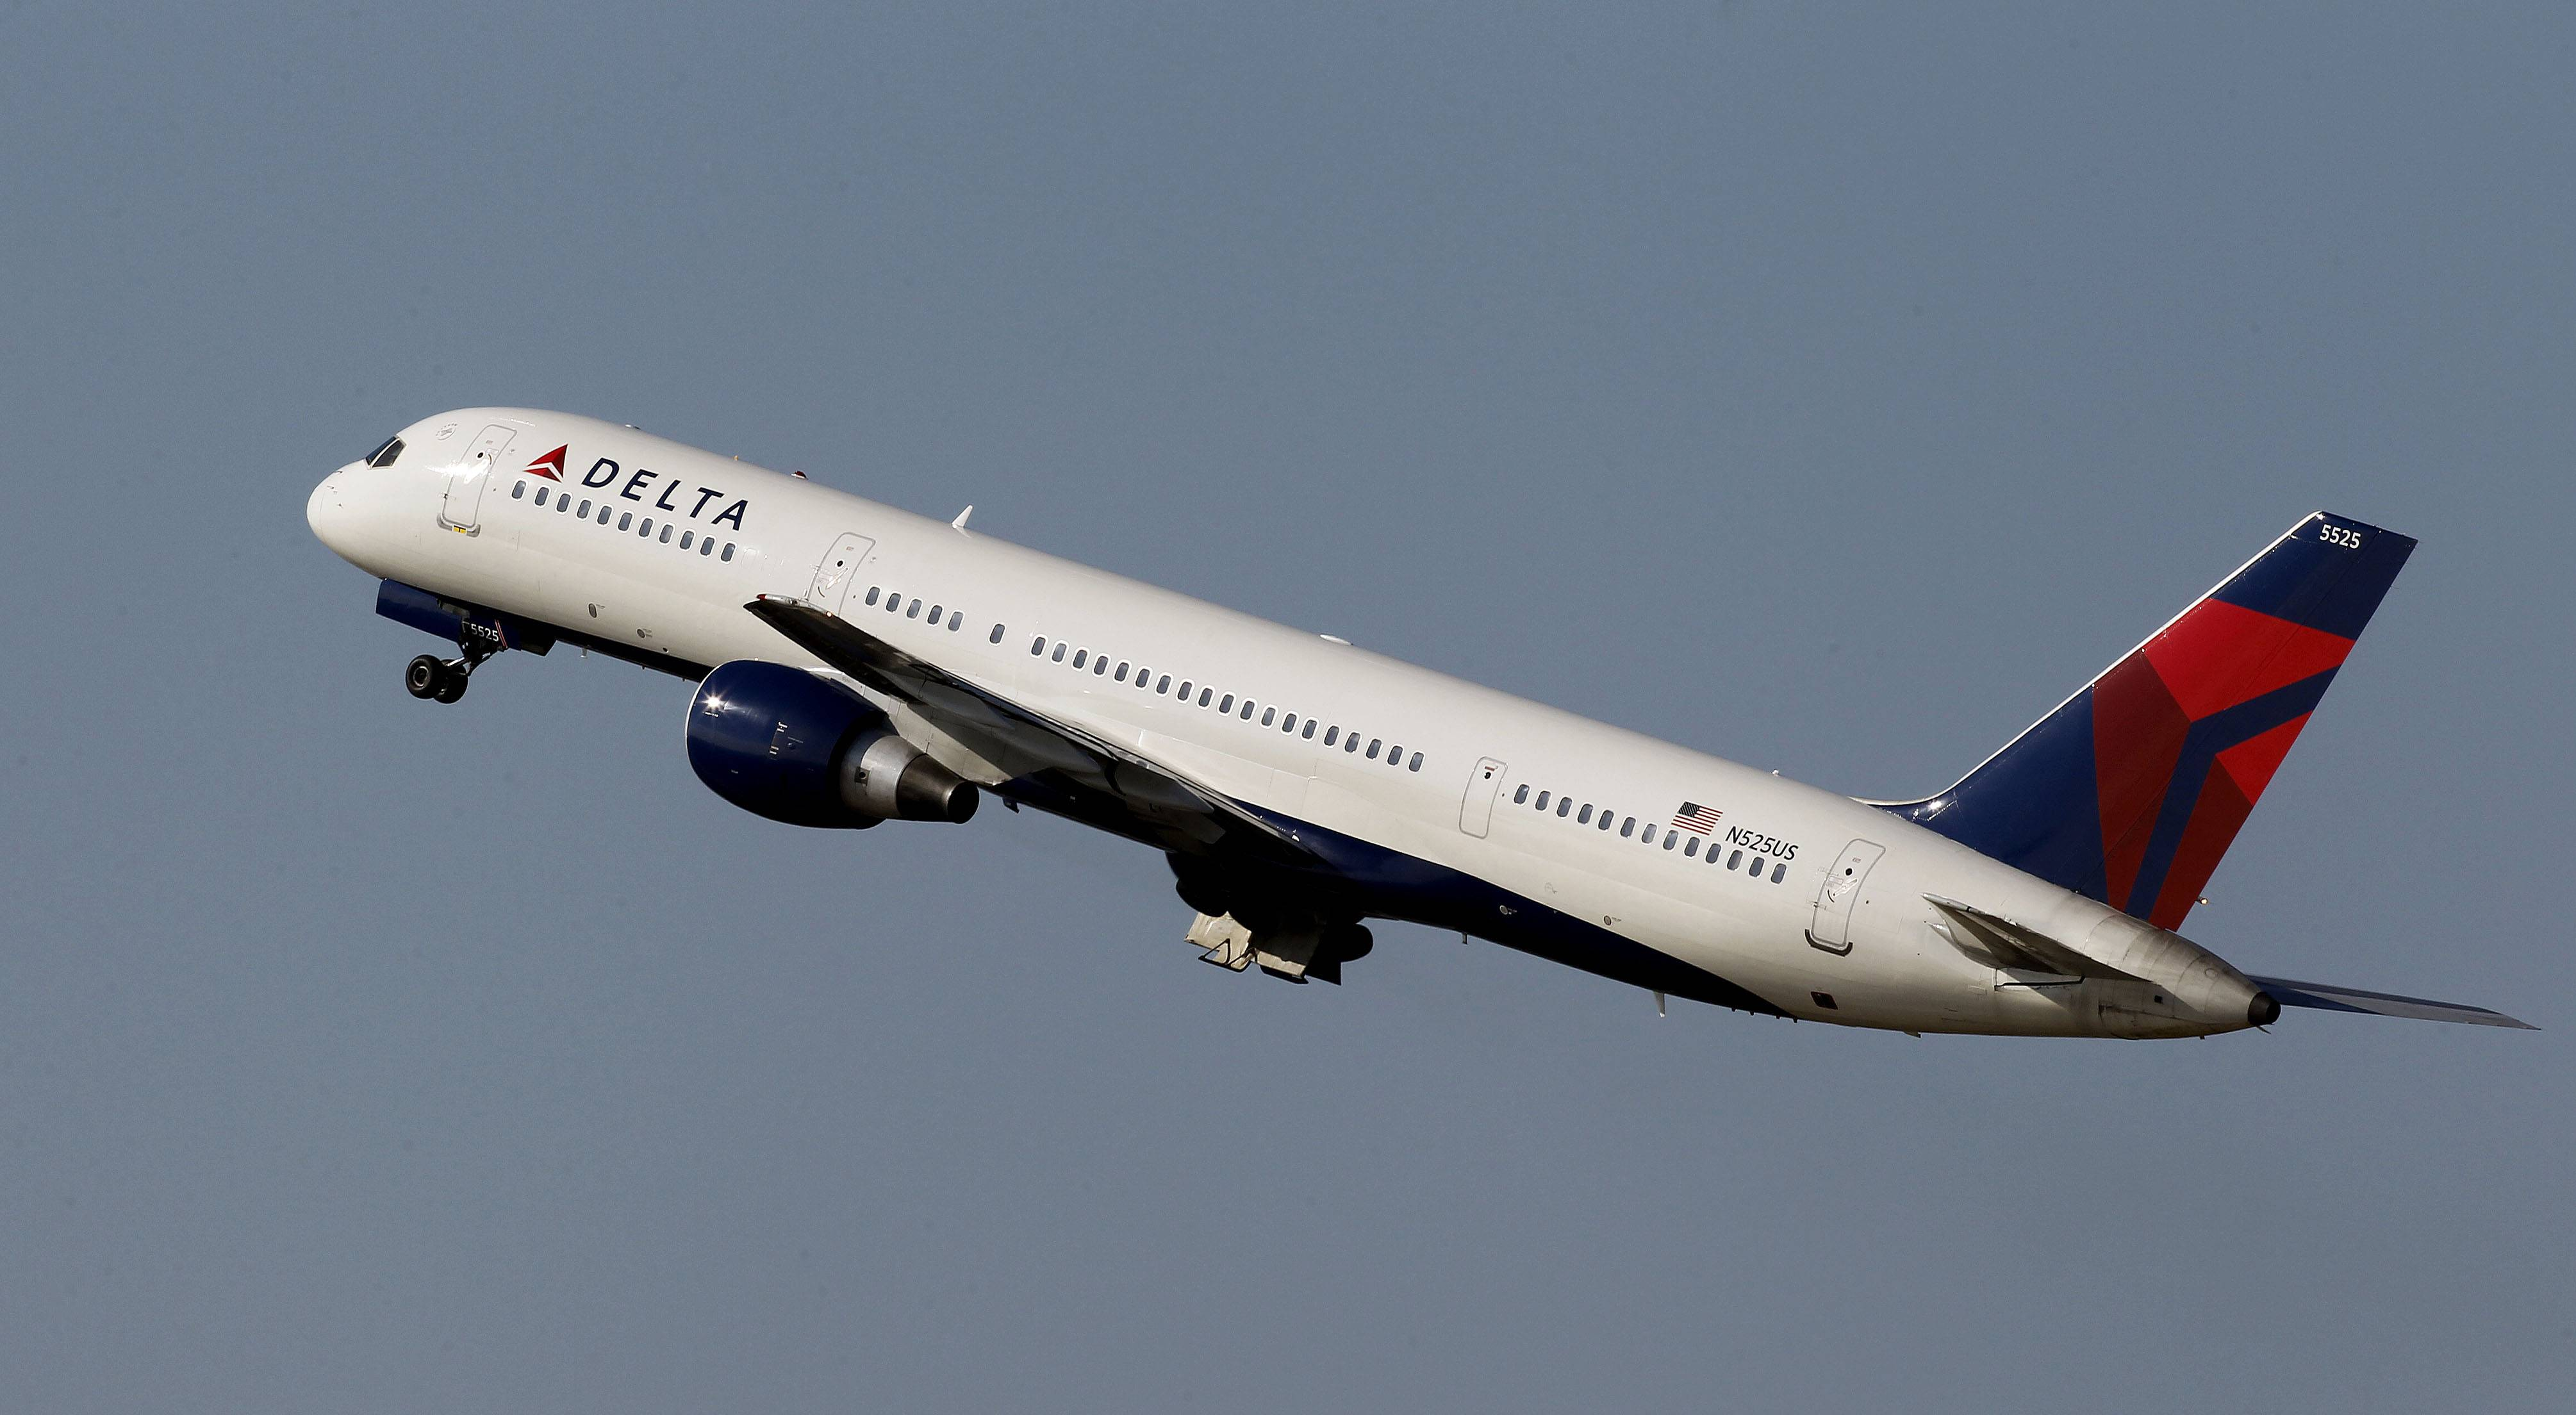 Delta Air Lines is making fundamental changes to its frequent flier program and will reward those who buy its priciest tickets, as opposed to those who fly the most miles. The airline said Wednesday that the 2015 SkyMiles program will better recognize frequent business travelers and leisure customers who buy premium fares.